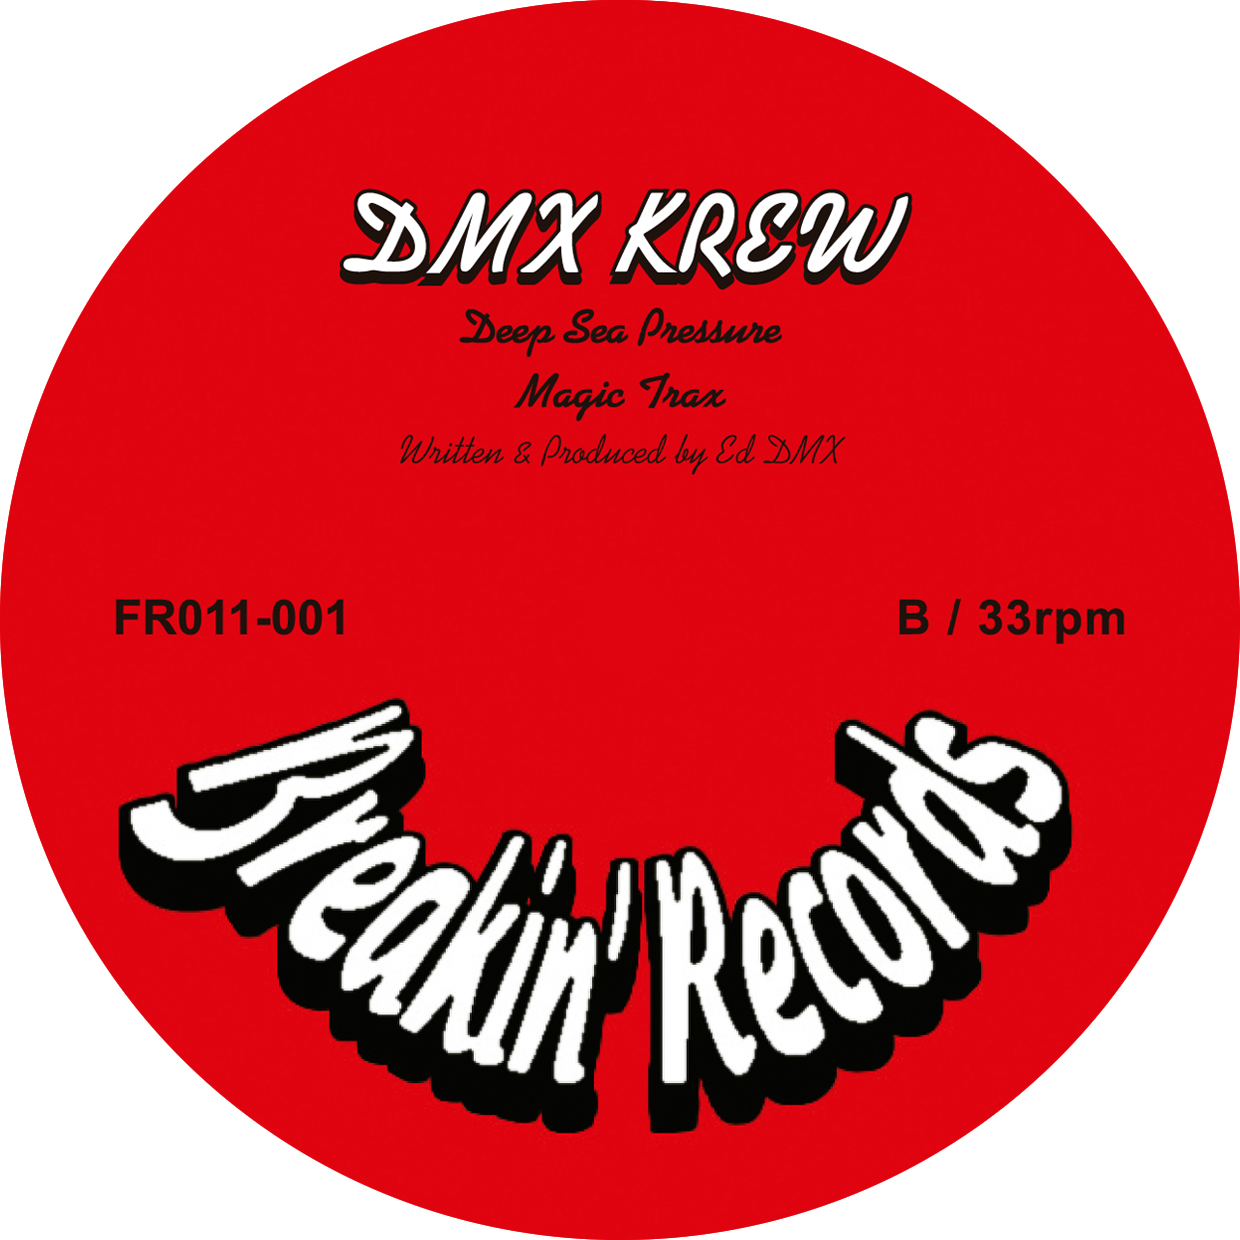 DMX Krew 20 Years Classics Unreleased and Remixes.